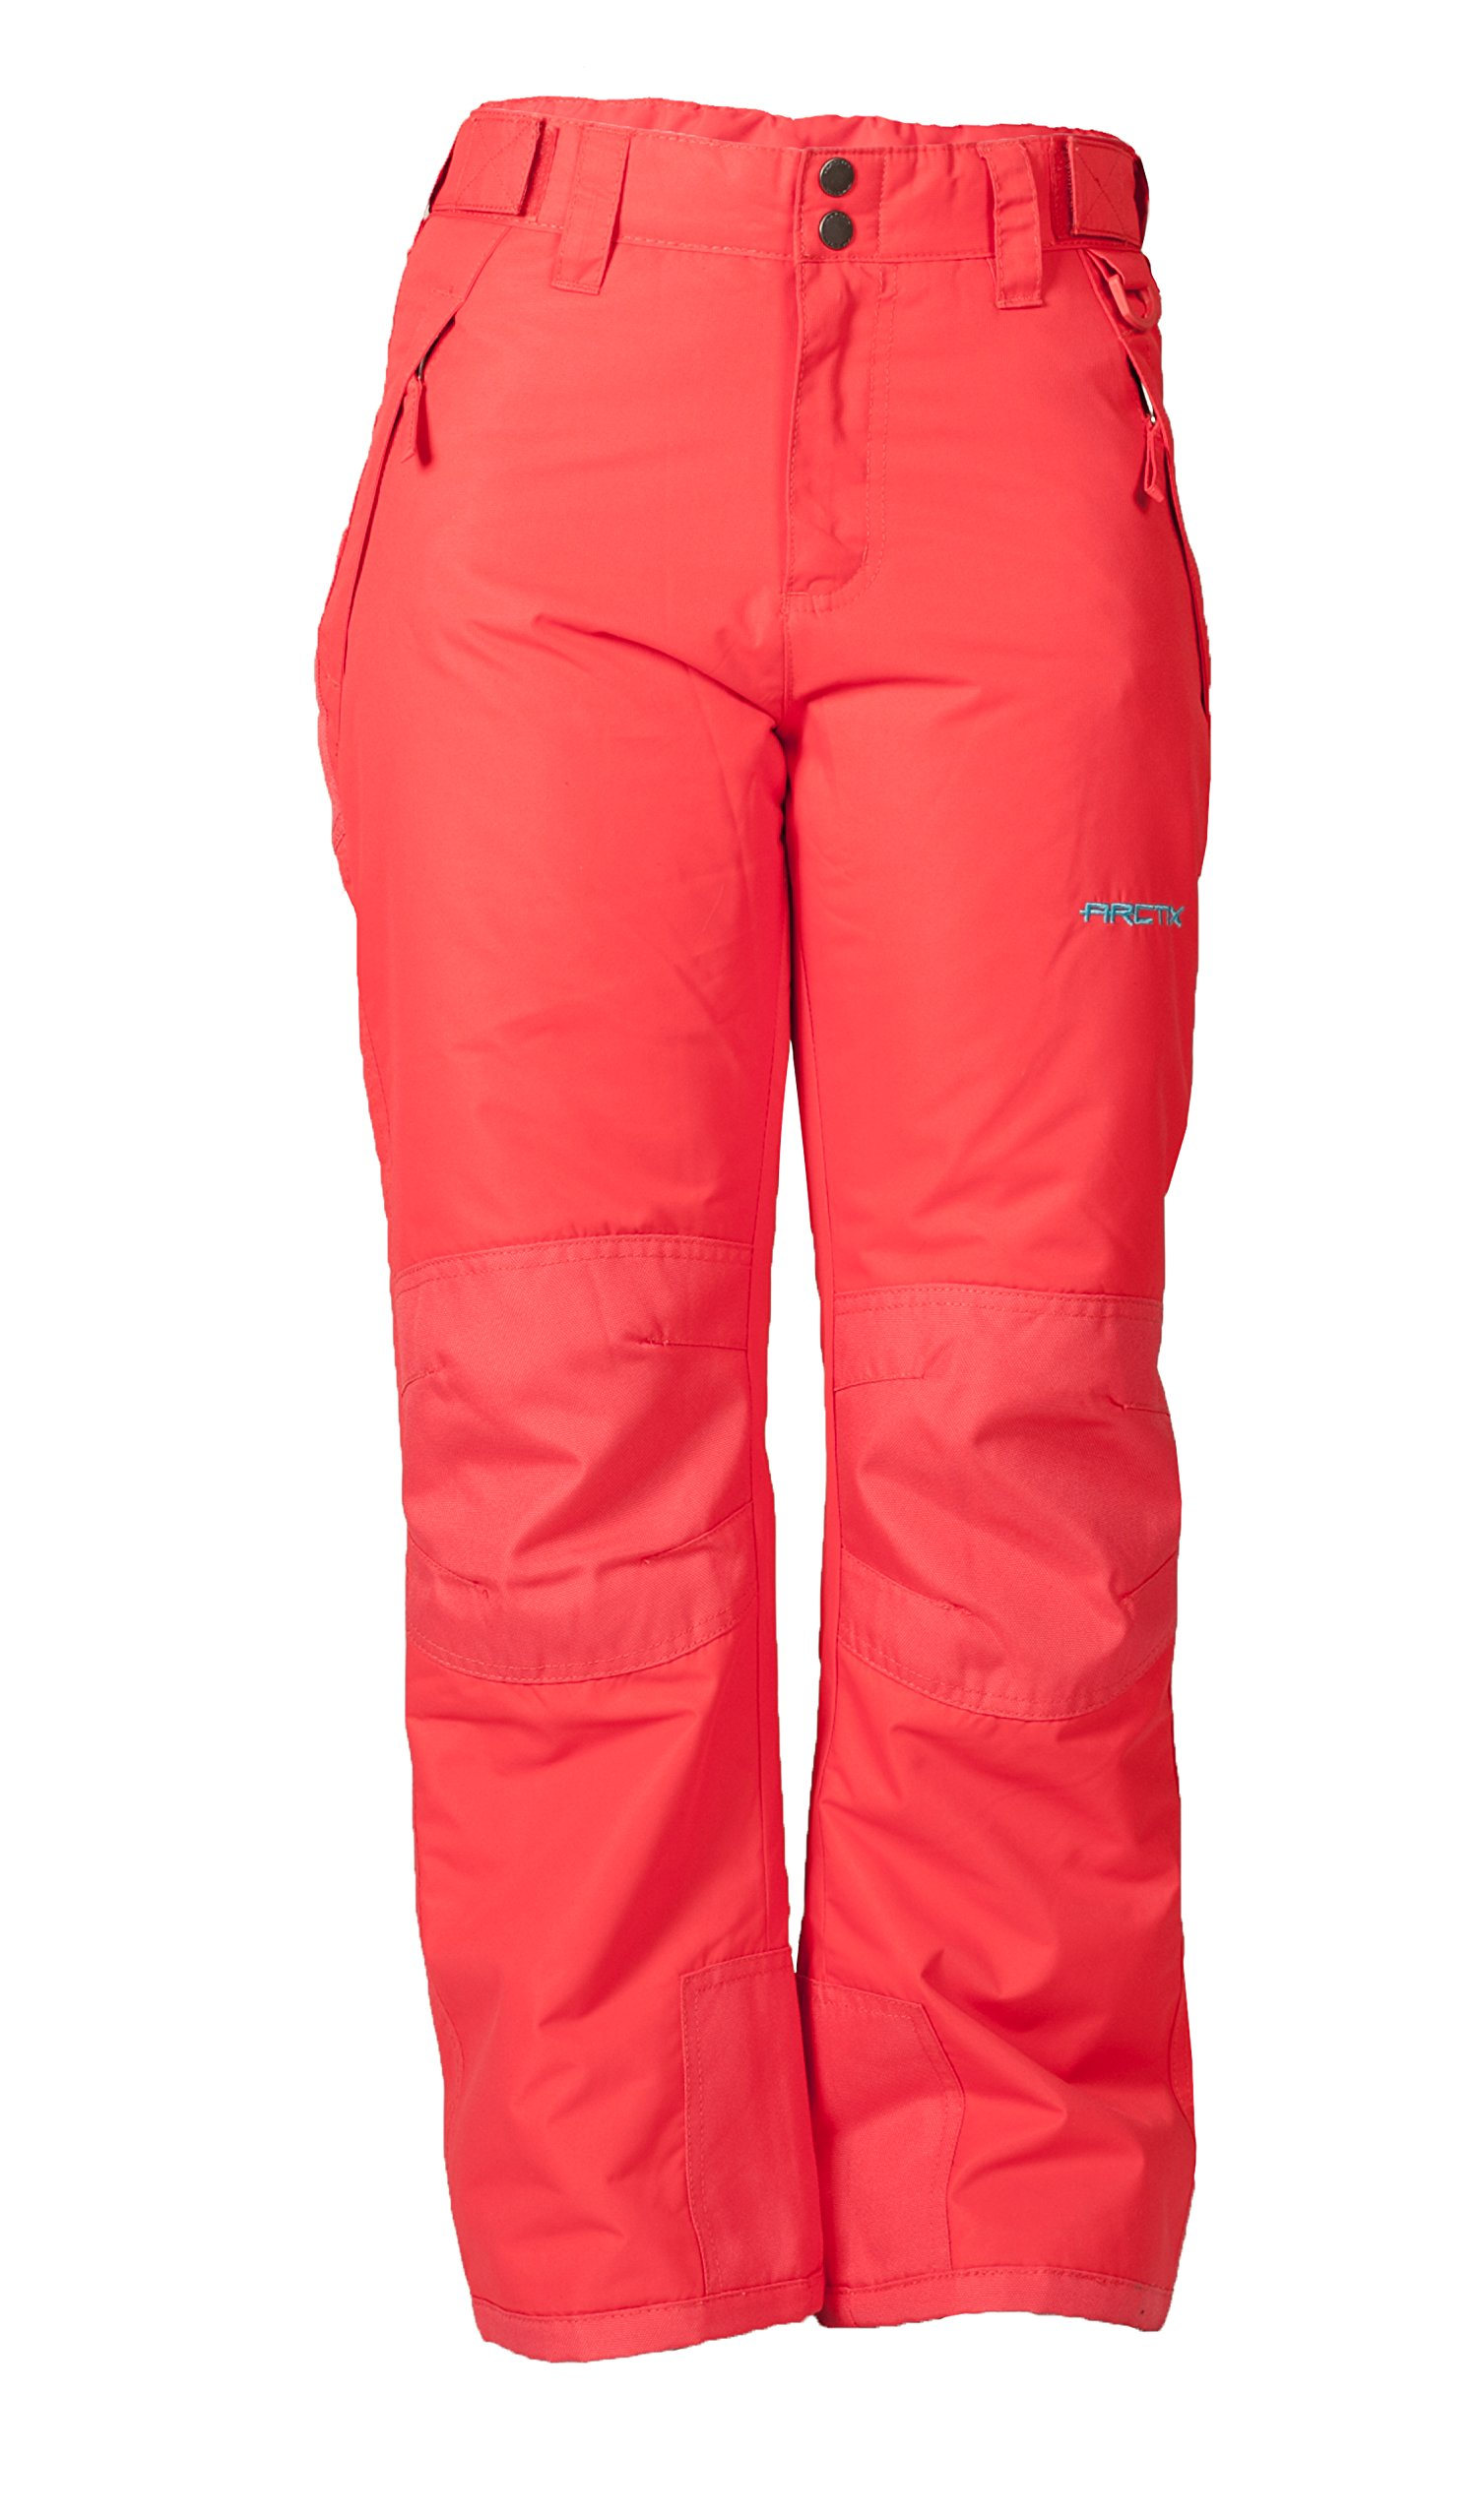 Arctix Youth Snow Pants with Reinforced Knees and Seat, Melon, X-Small